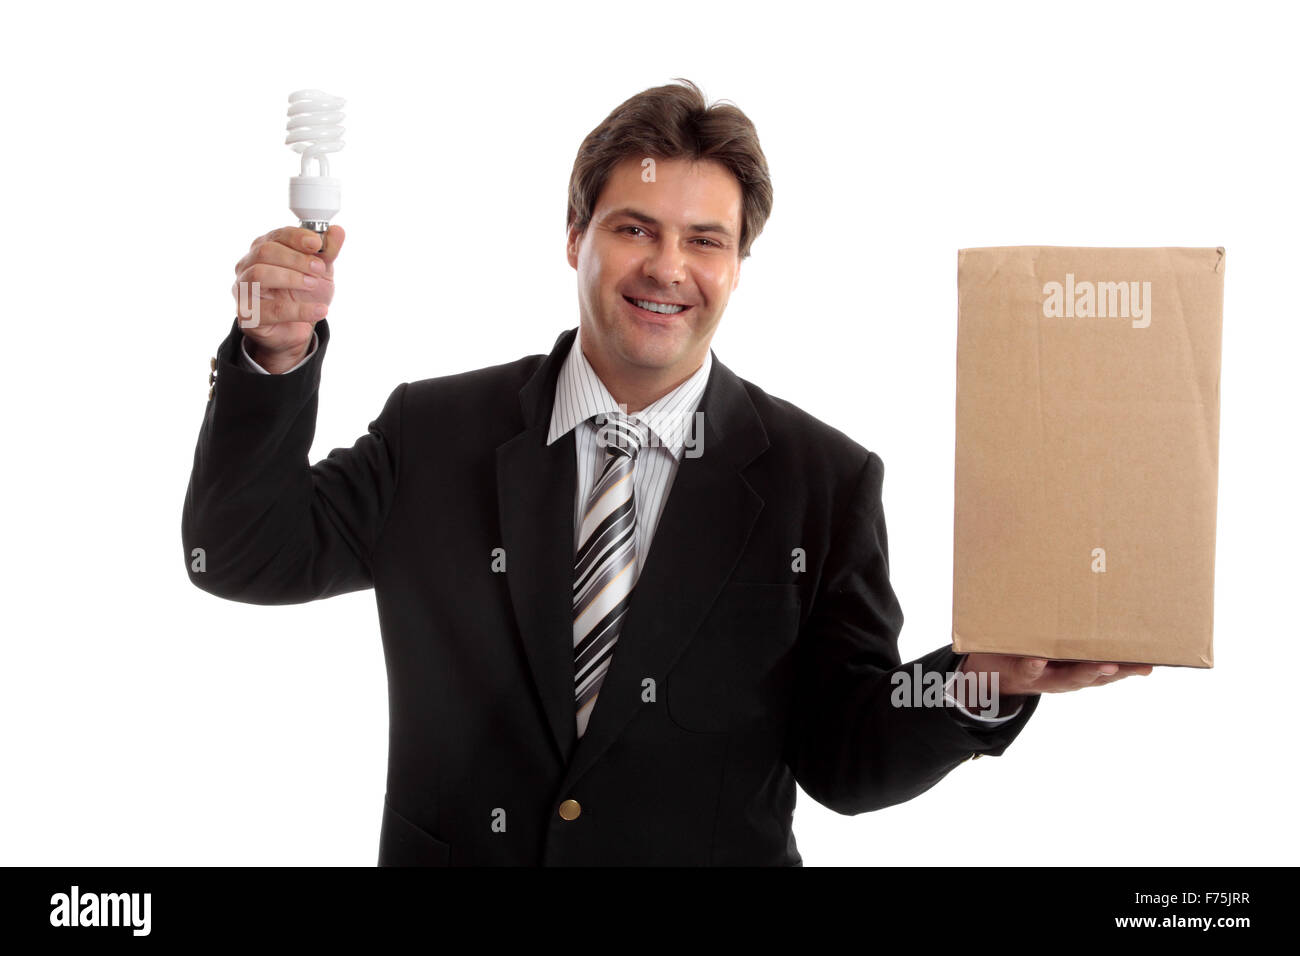 Business - Think outside the box Stock Photo